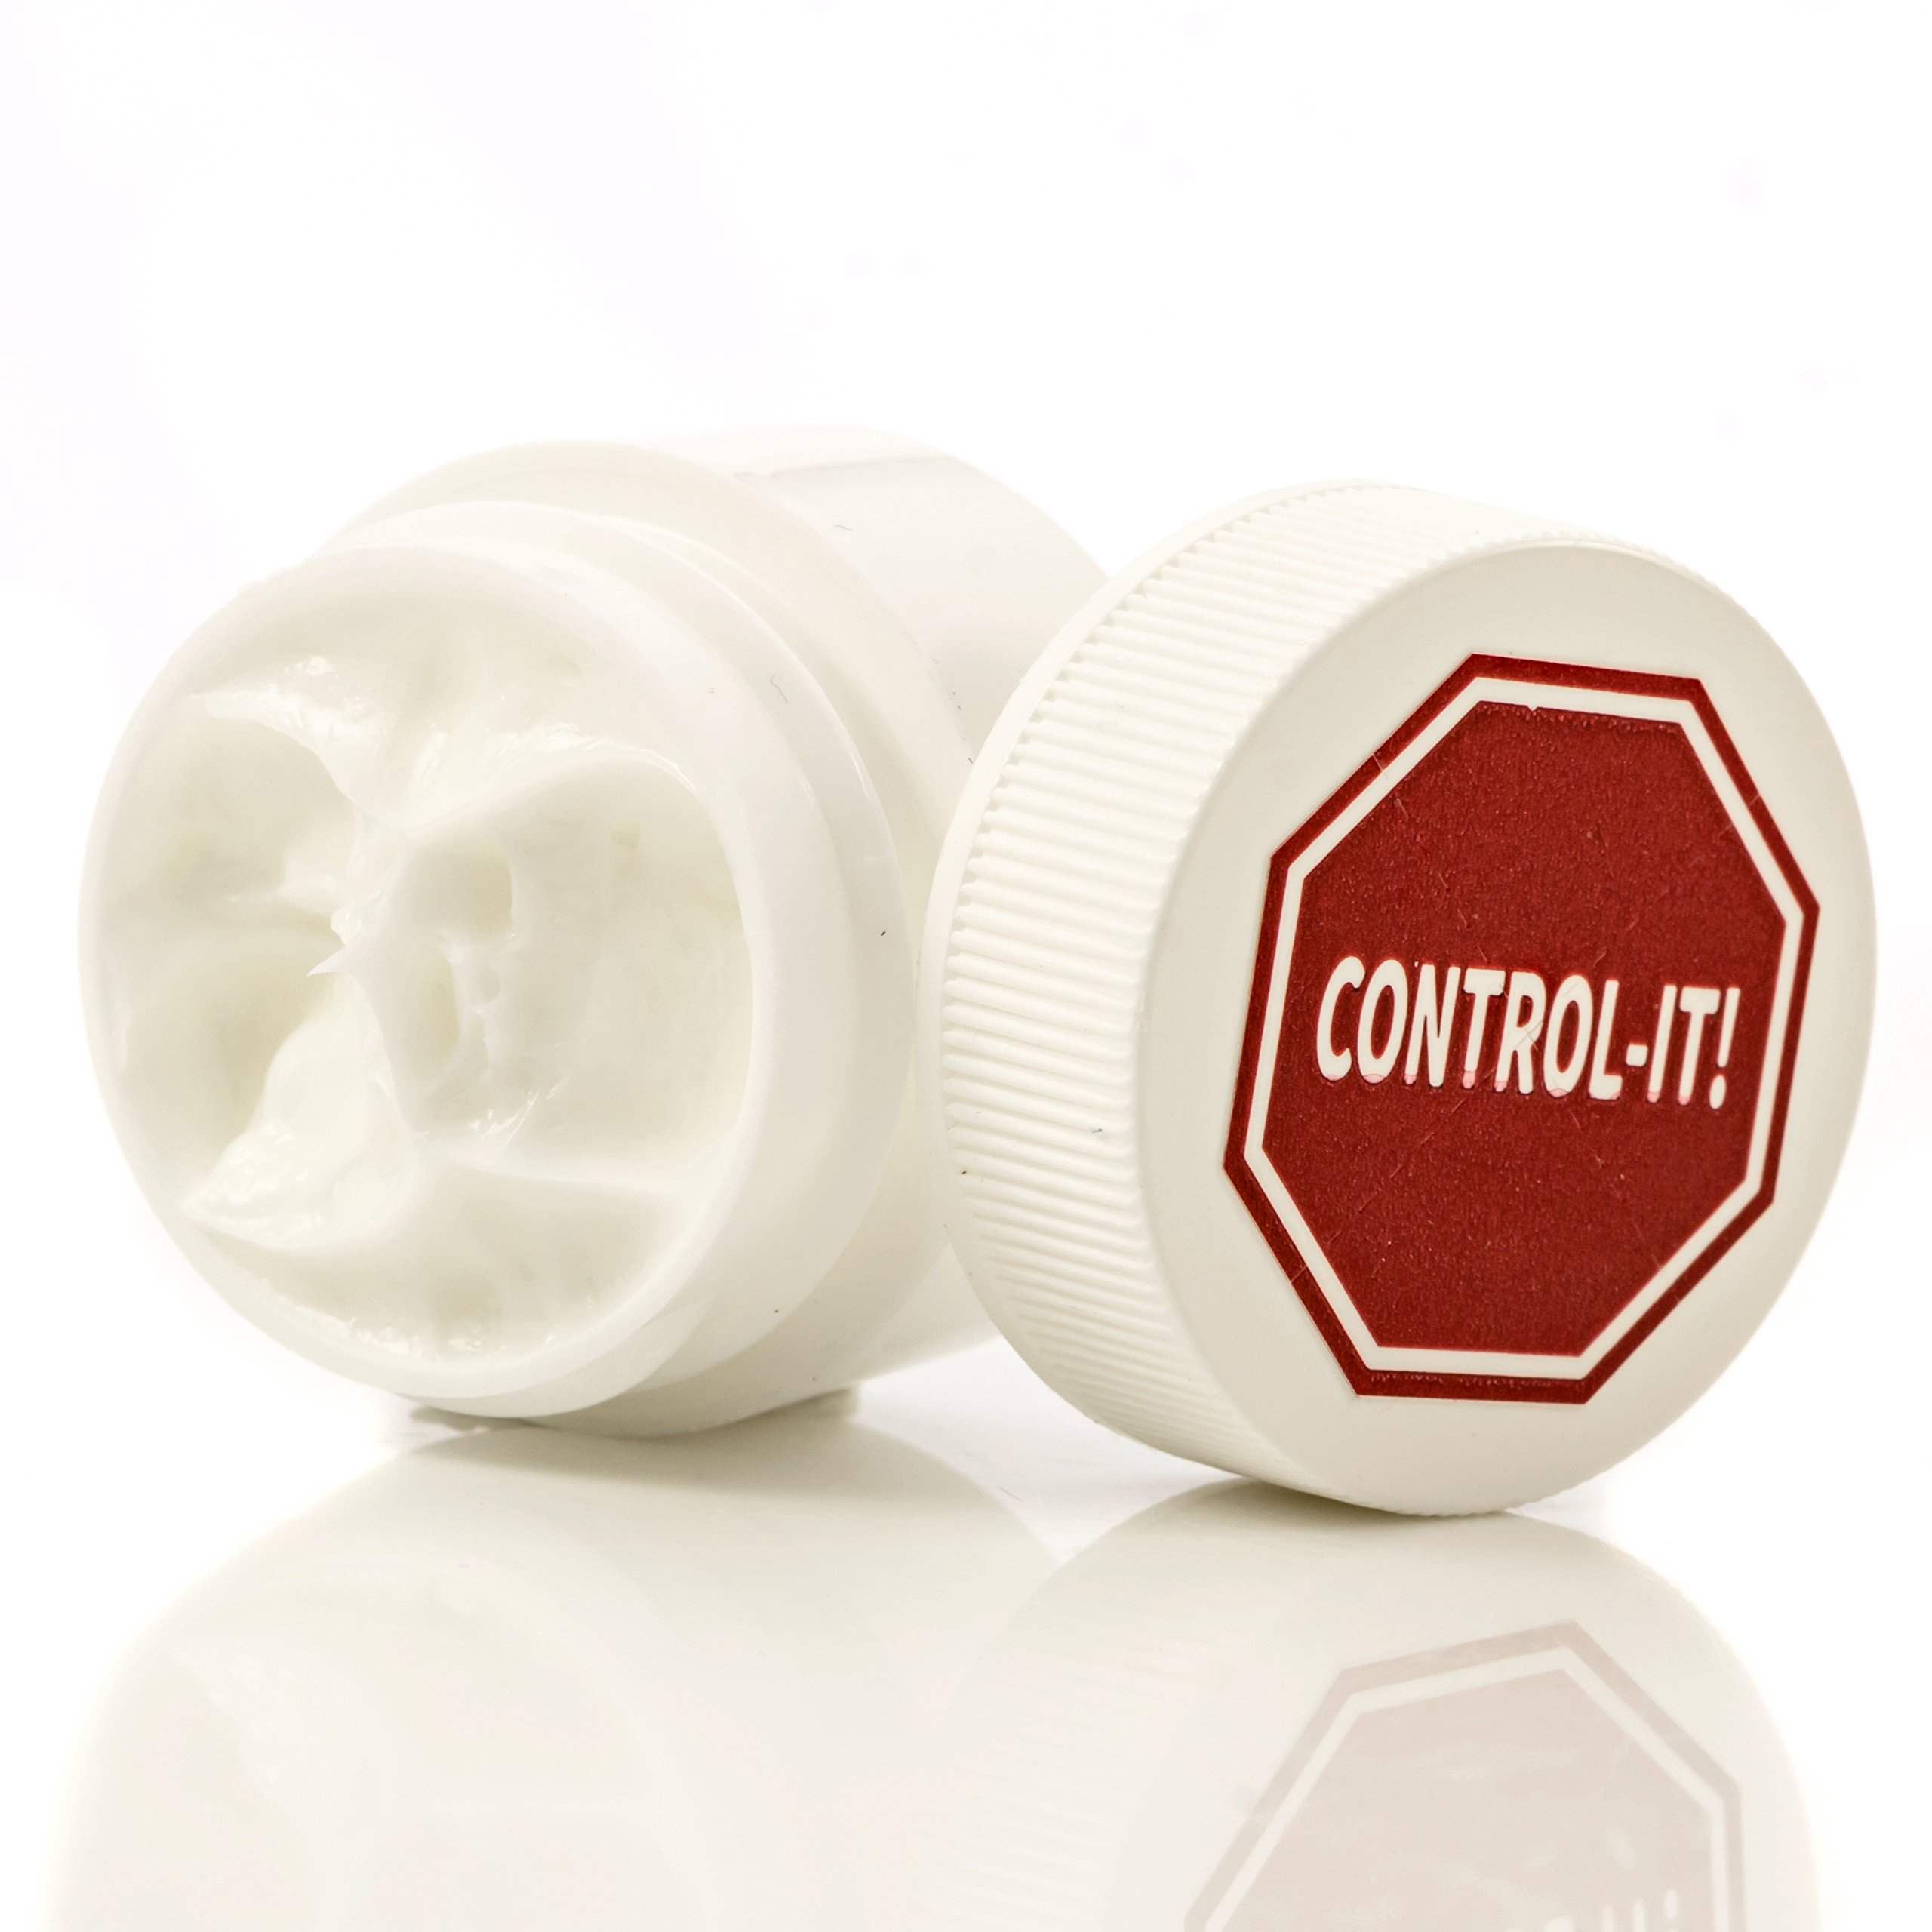 Control-It Stop Thumb Sucking & Nail Biting Cream (4-Pack) All-Natural, Kid-Safe Deterrent | Gentle on Skin, Teeth, Fingers | Bitter Taste, Easy-to-Apply Formula by Control-It